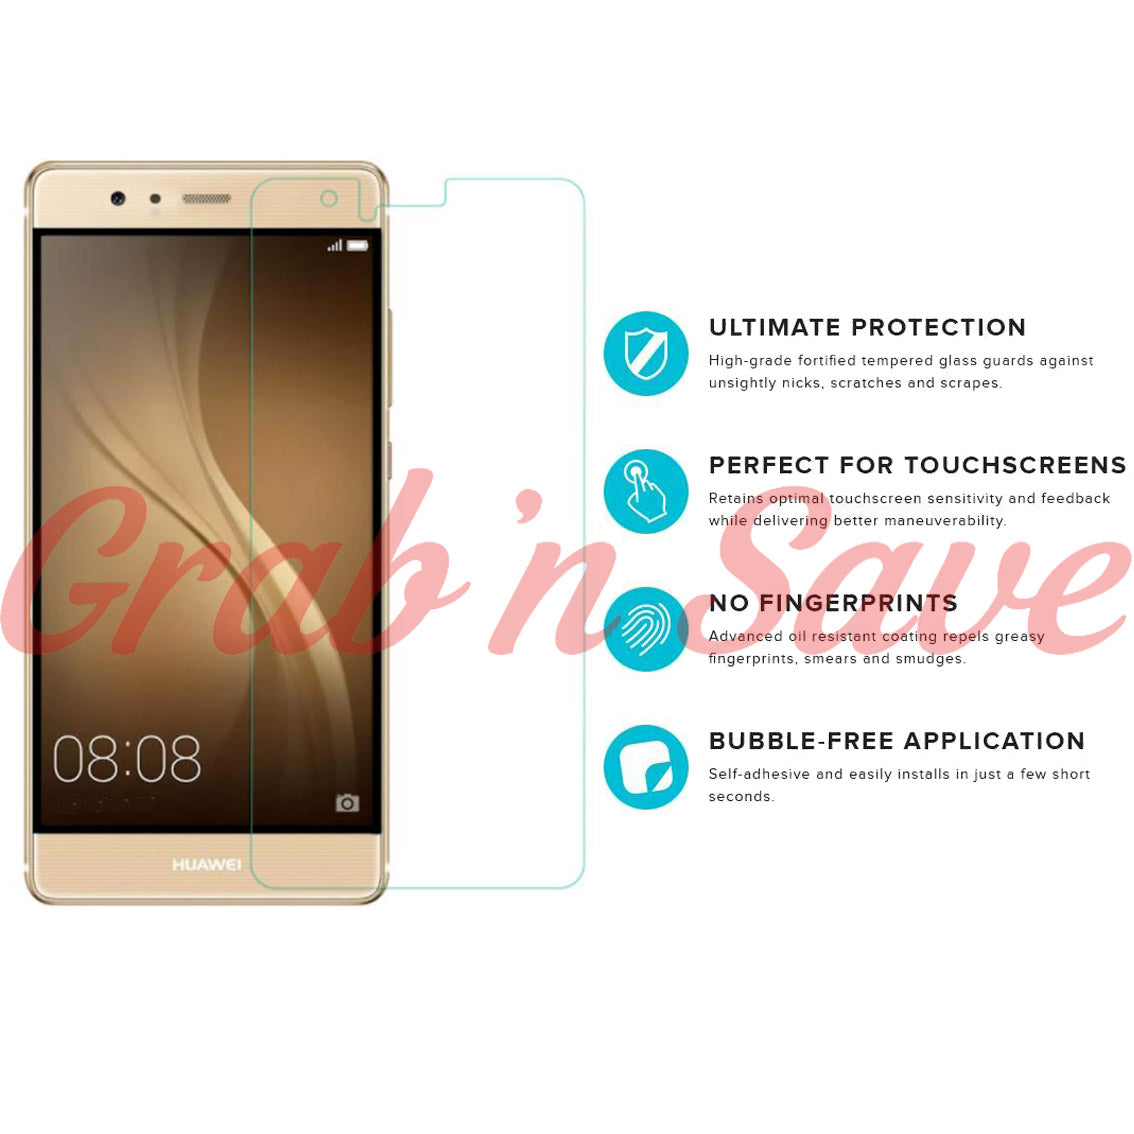 Huawei P9 Screen Protector, Glass Screen Protector, Tempered Glass Screen Protector